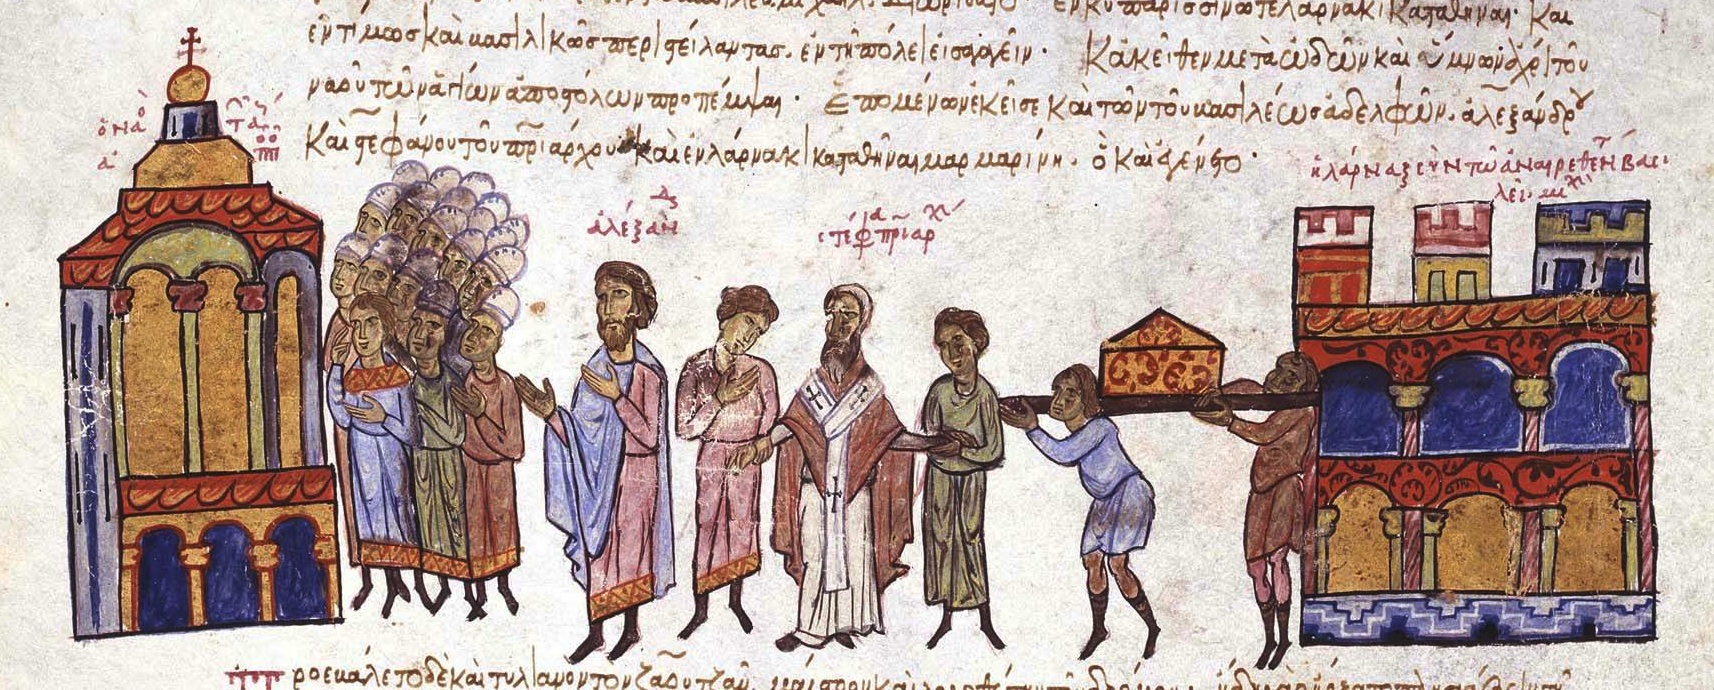 The_relics_of_Michael_III_are_transferred_to_the_Holy_Apostles